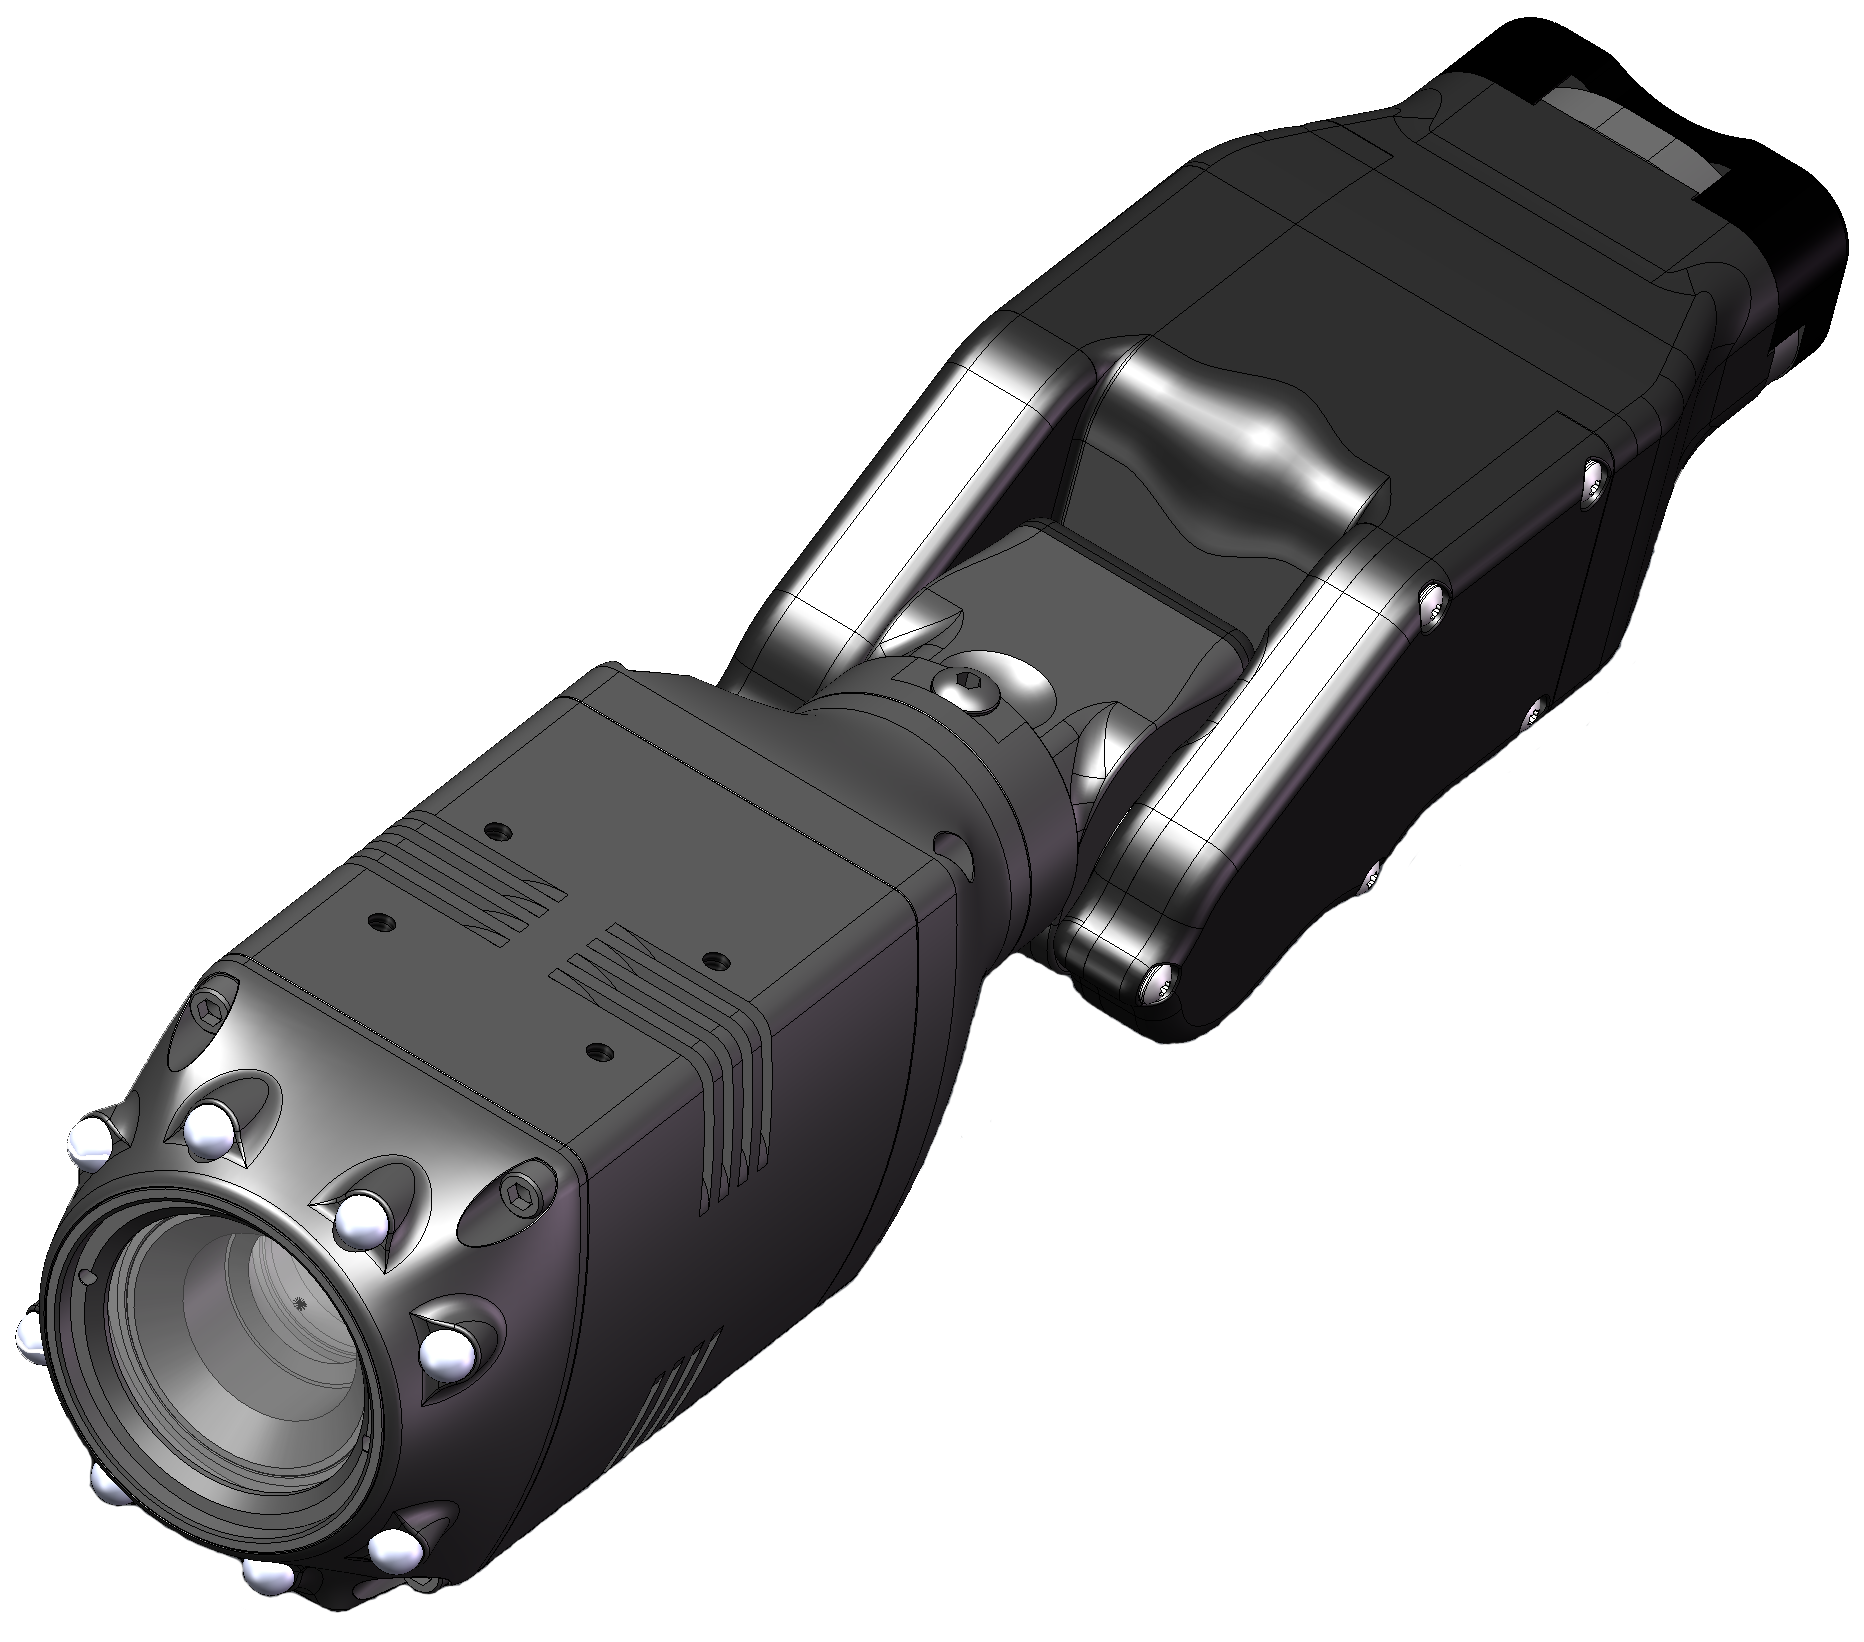 - CL-Series megapixel night vision camera with CA-Series motorized remote control articulation.